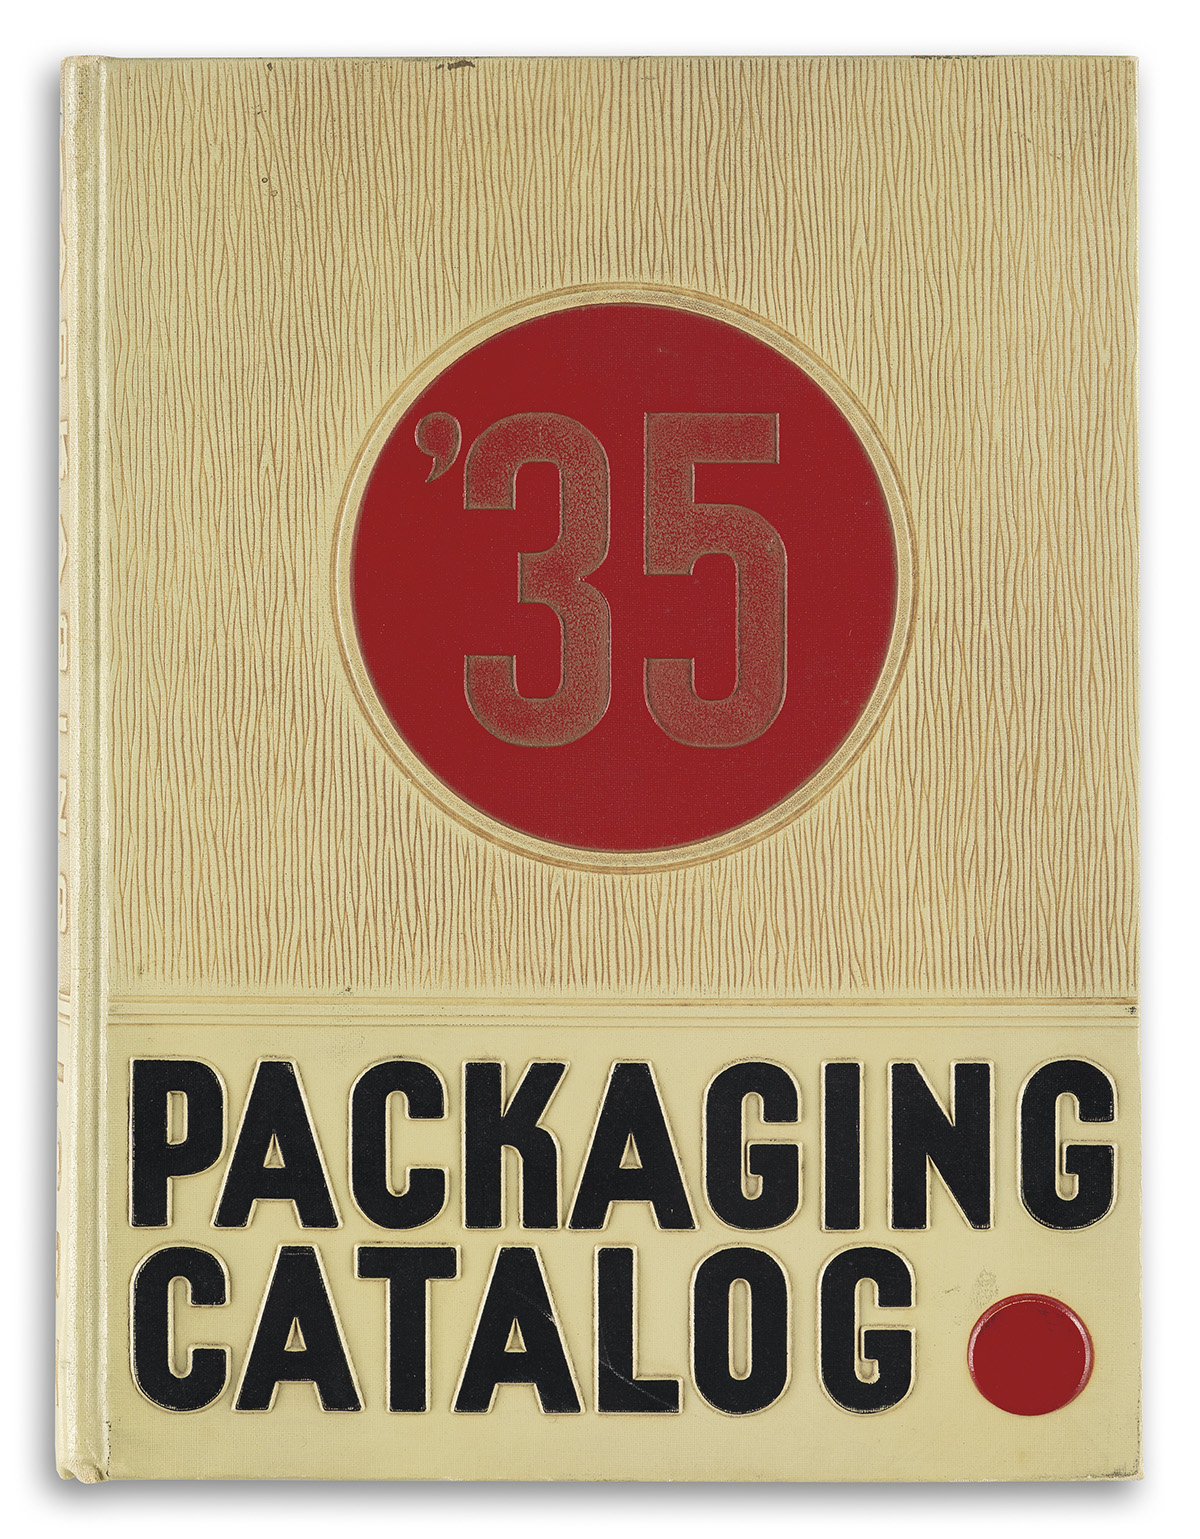 VARIOUS-ARTISTS-PACKAGING-CATALOG-Book-1935-11x8-inches-29x2